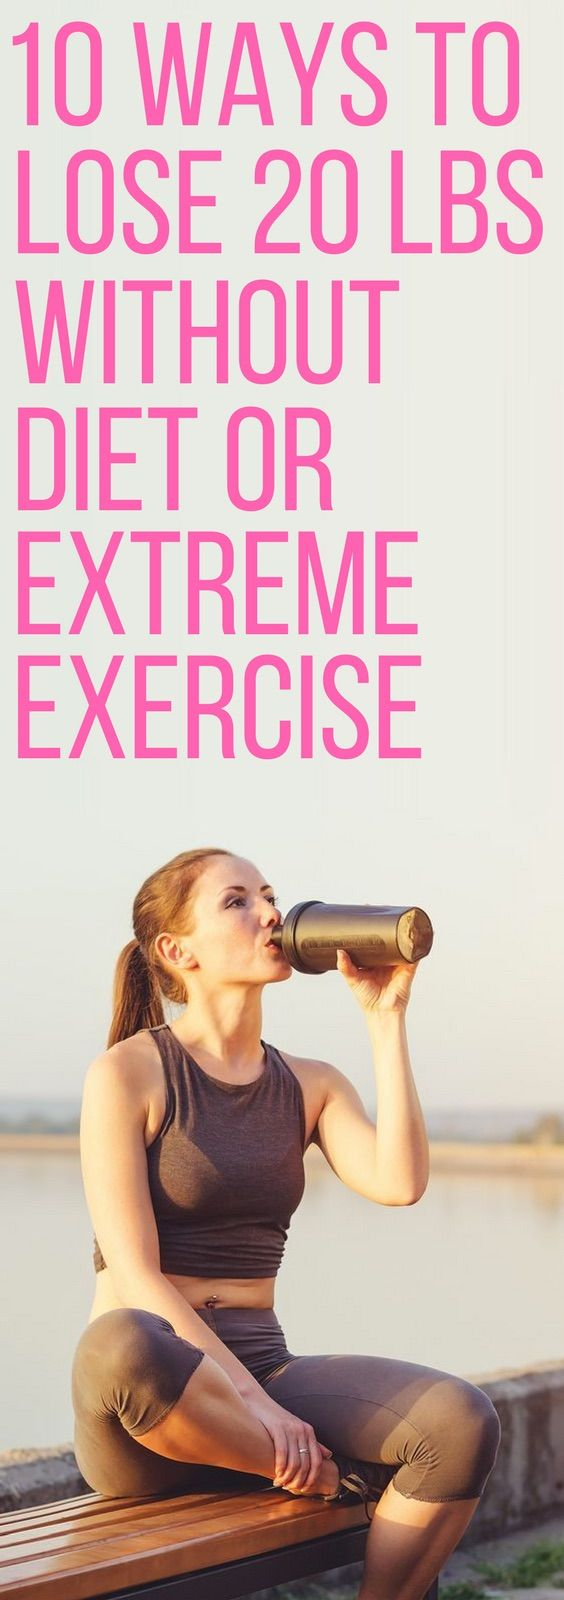 how to lose weight without exercise reddit